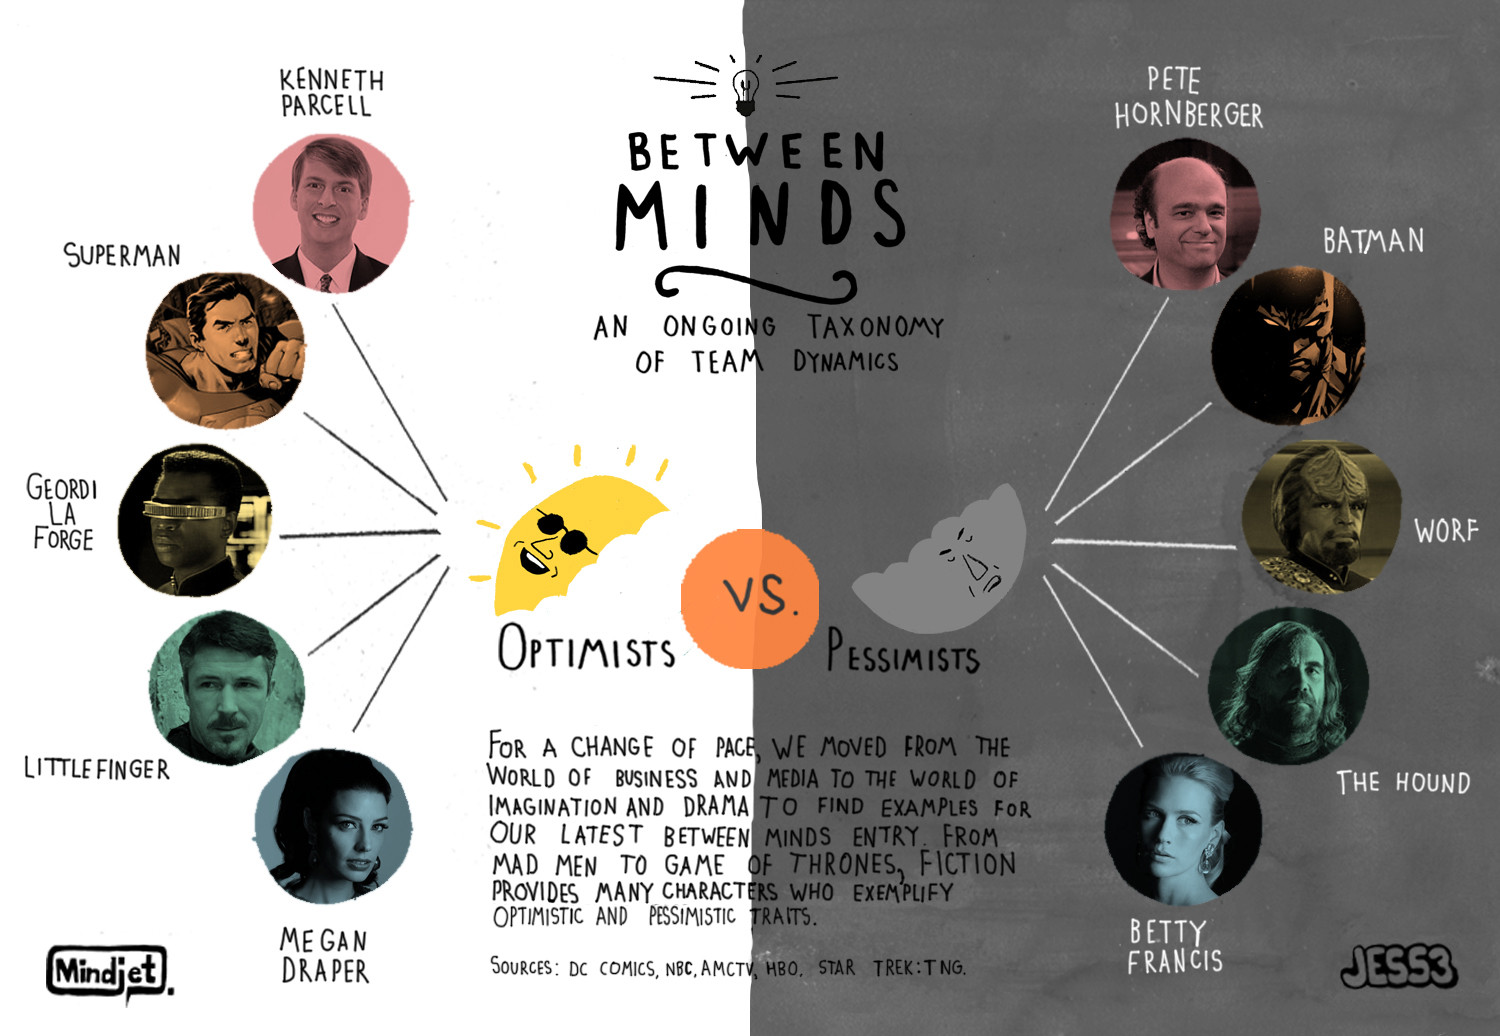 Between Minds: Optimists vs. Pessimists Infographic